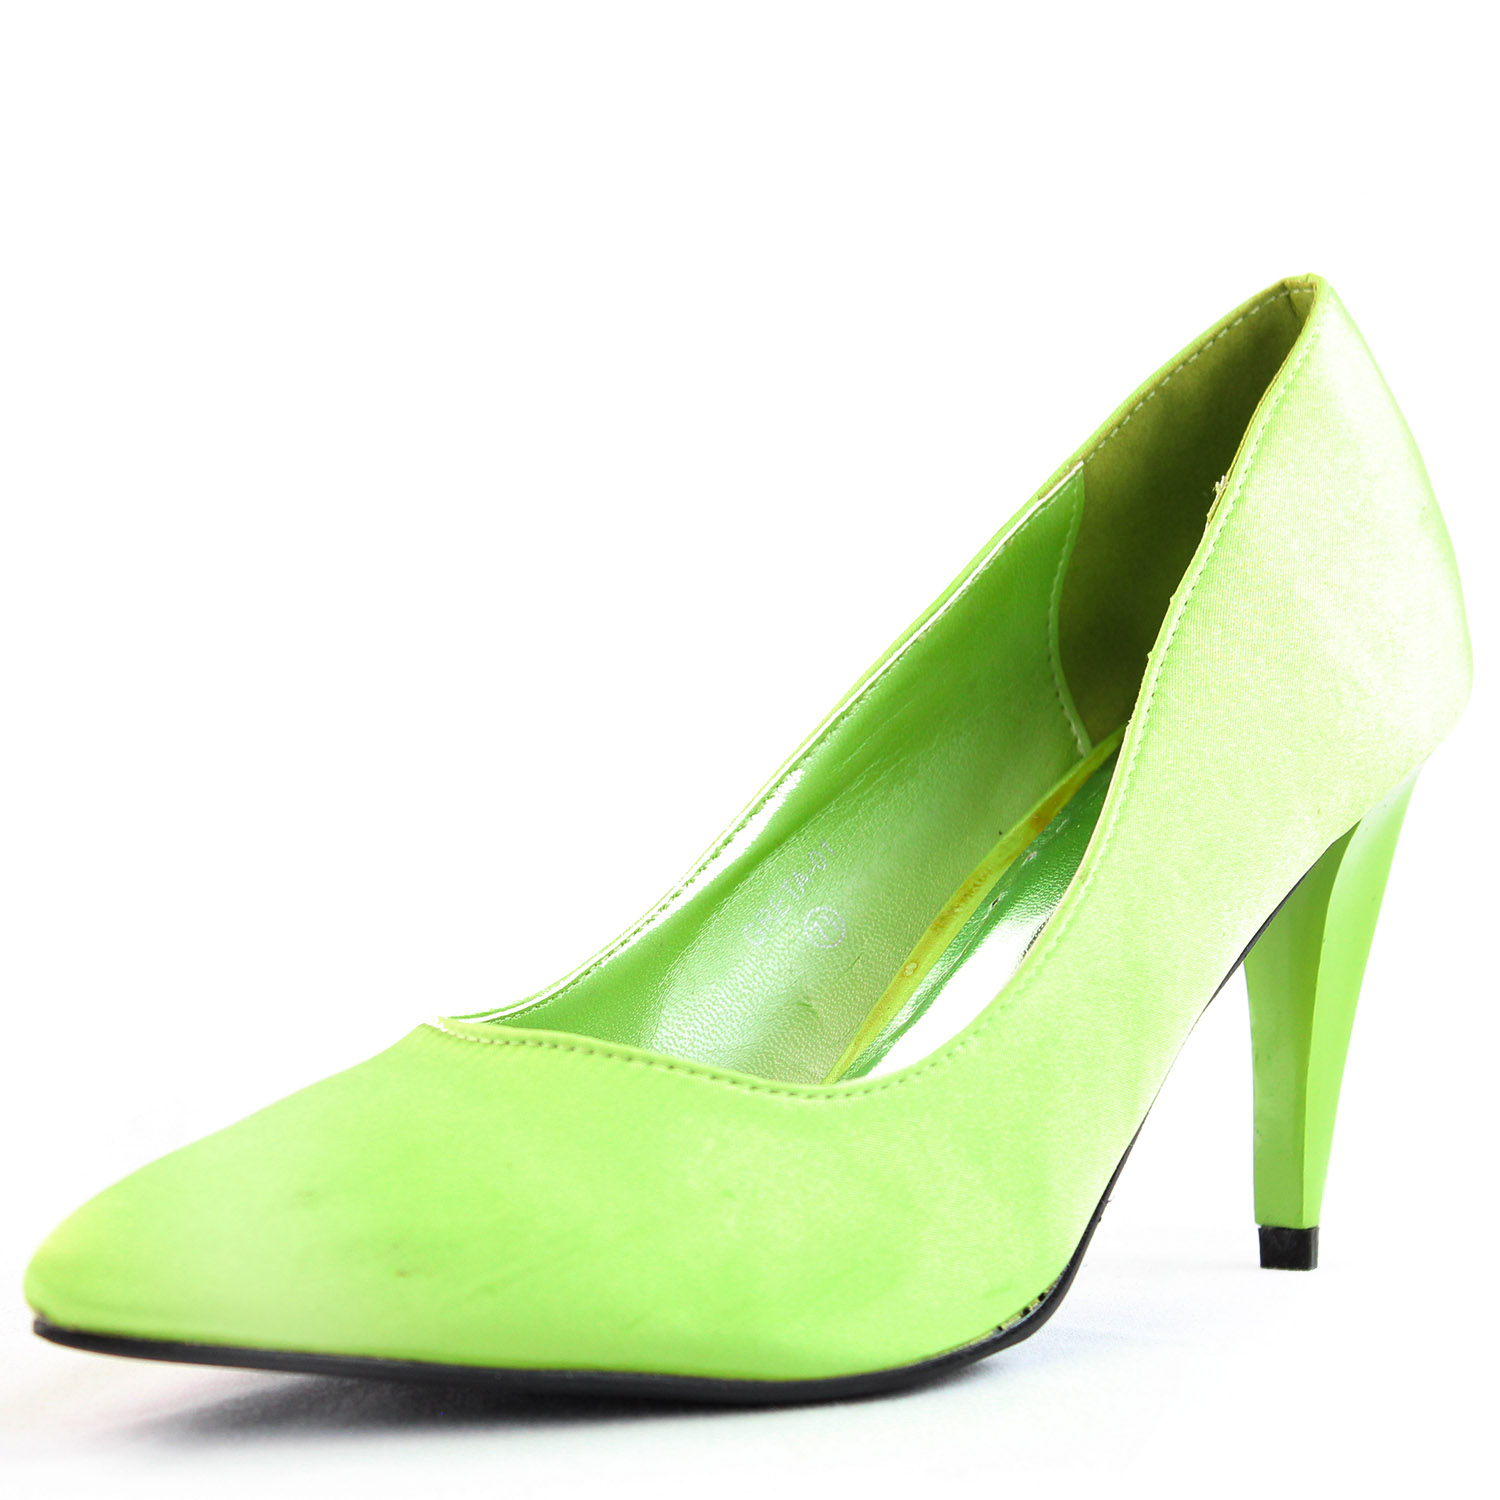 mint green satin almond toe pumps pointed toe high heels